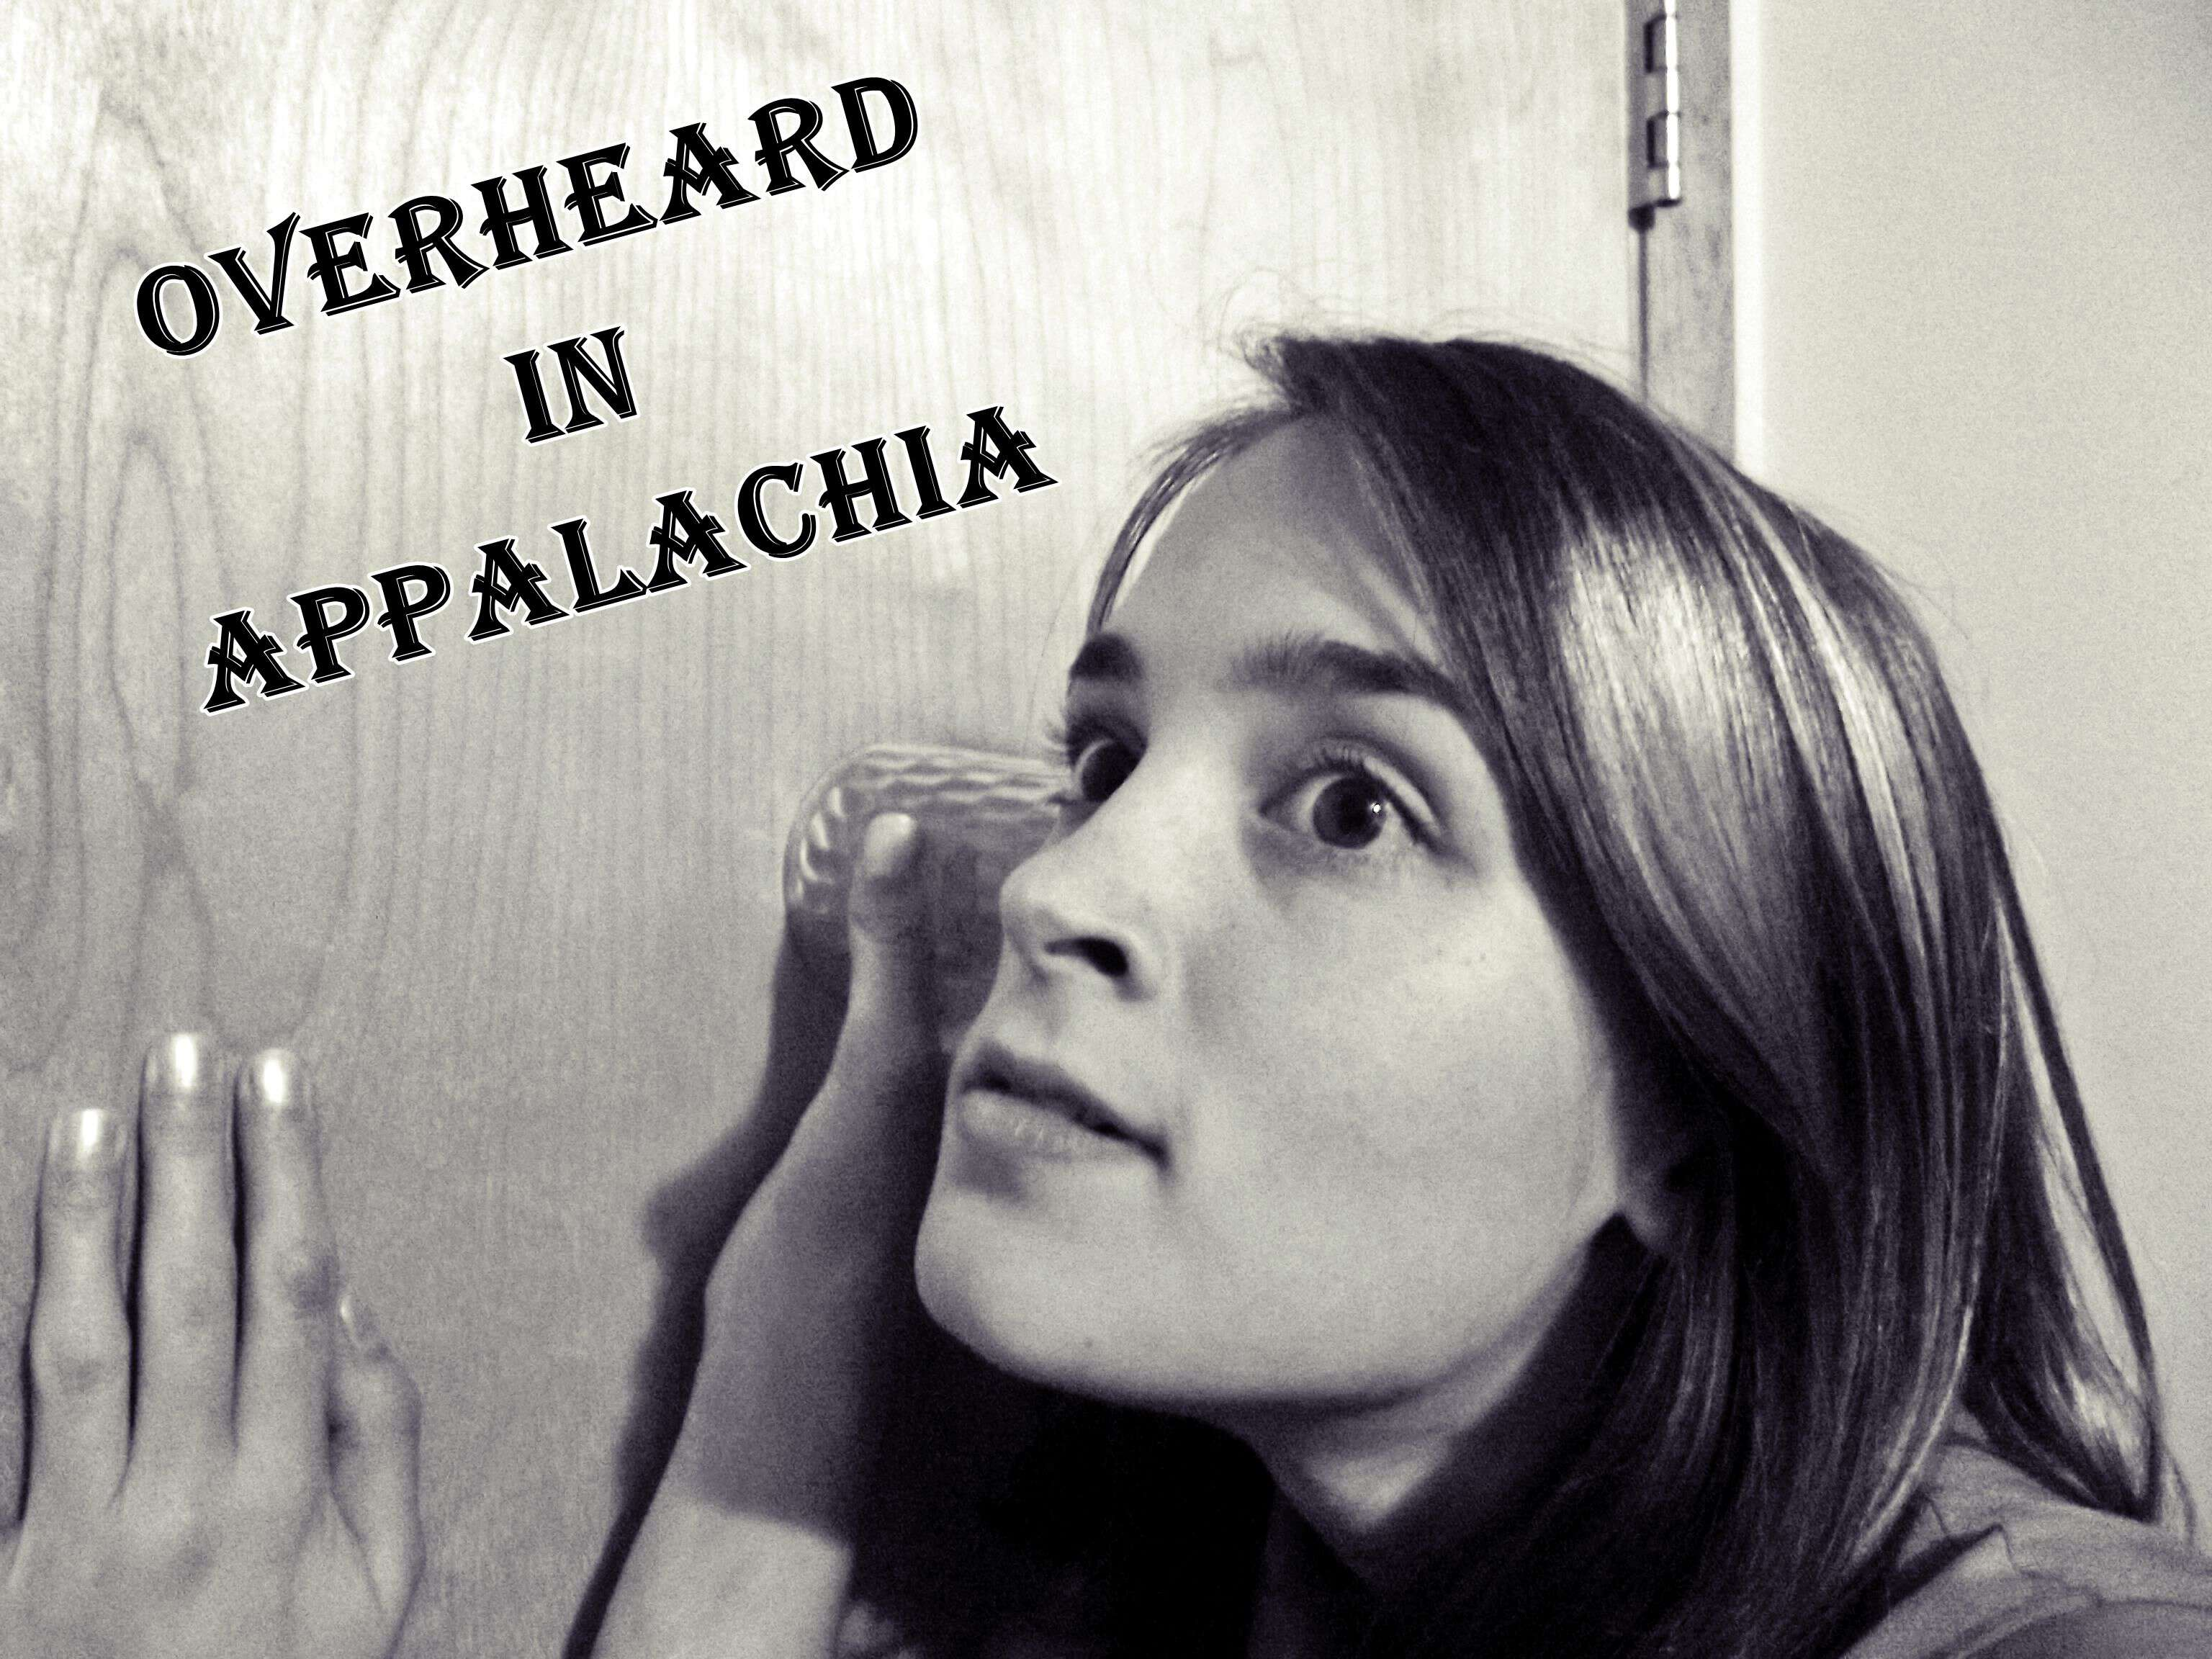 Overheard-in-Appalachia